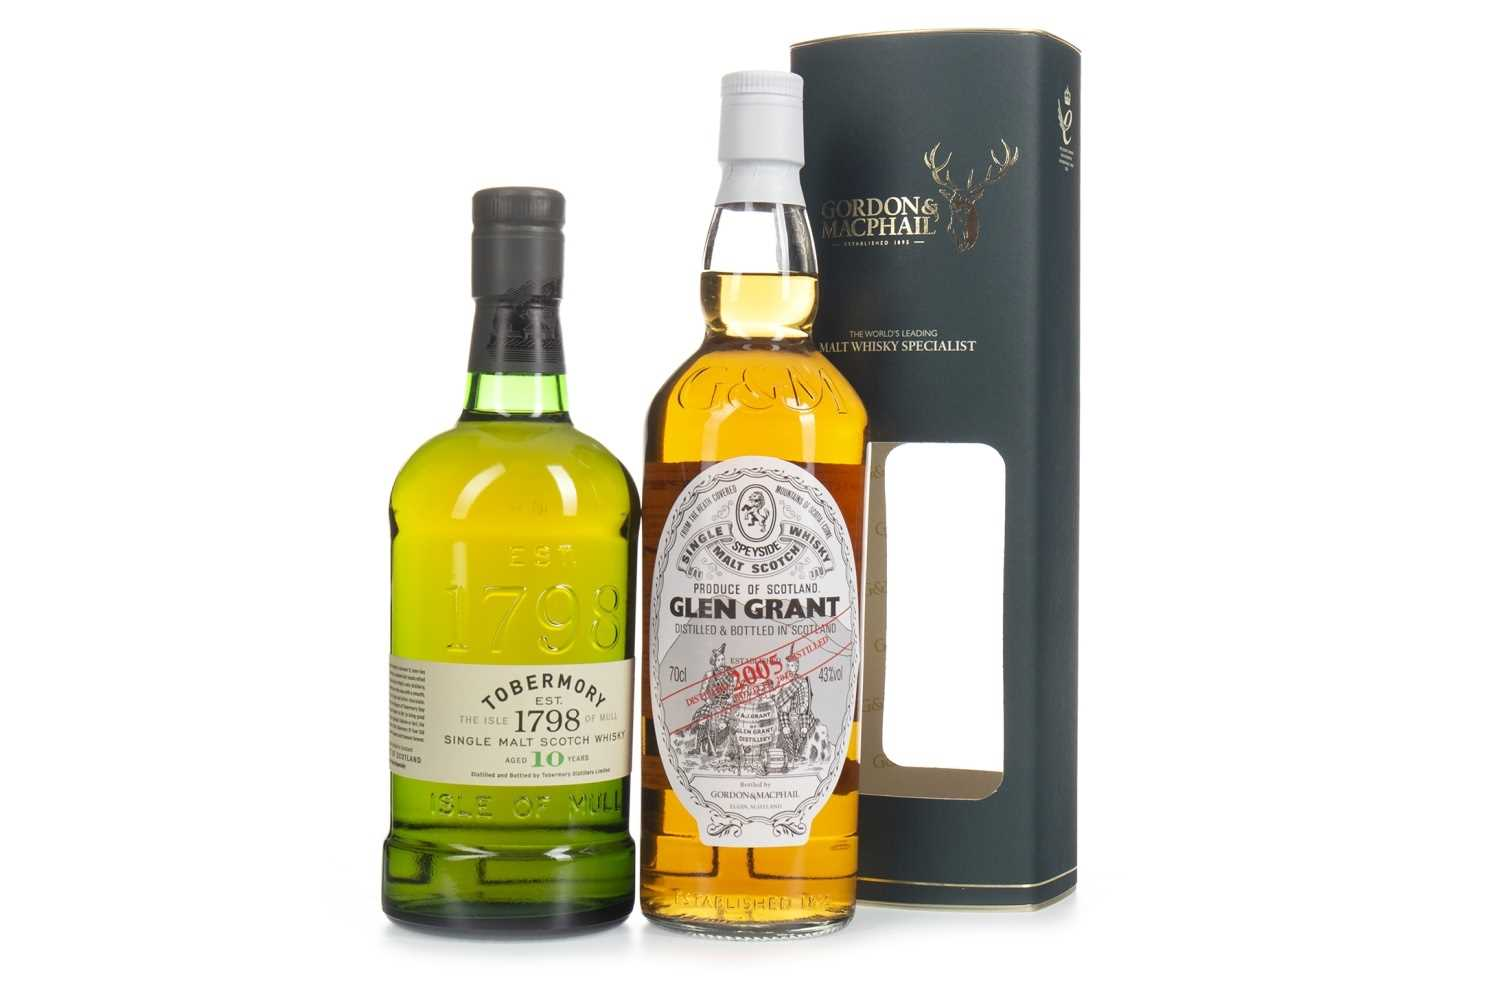 Lot 317-GLEN GRANT 2005 AND TOBERMORY AGED 10 YEARS